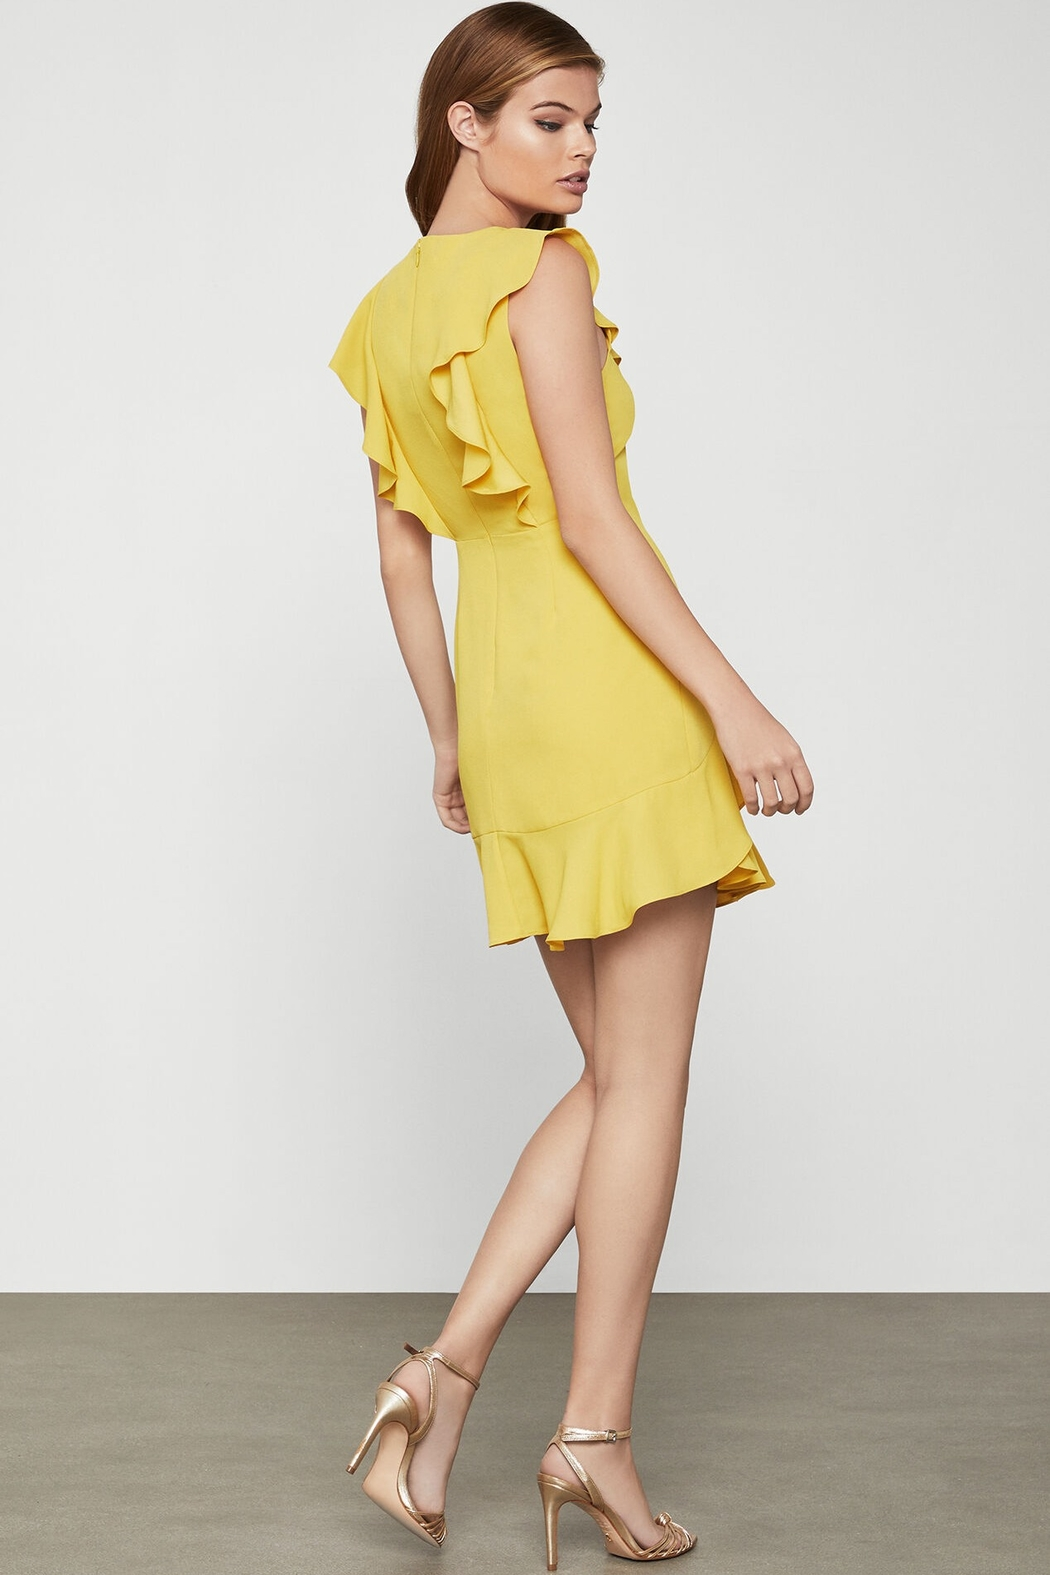 BCBG MAXAZRIA Tyrah Sleeveless Ruffle Dress - Front Full Image